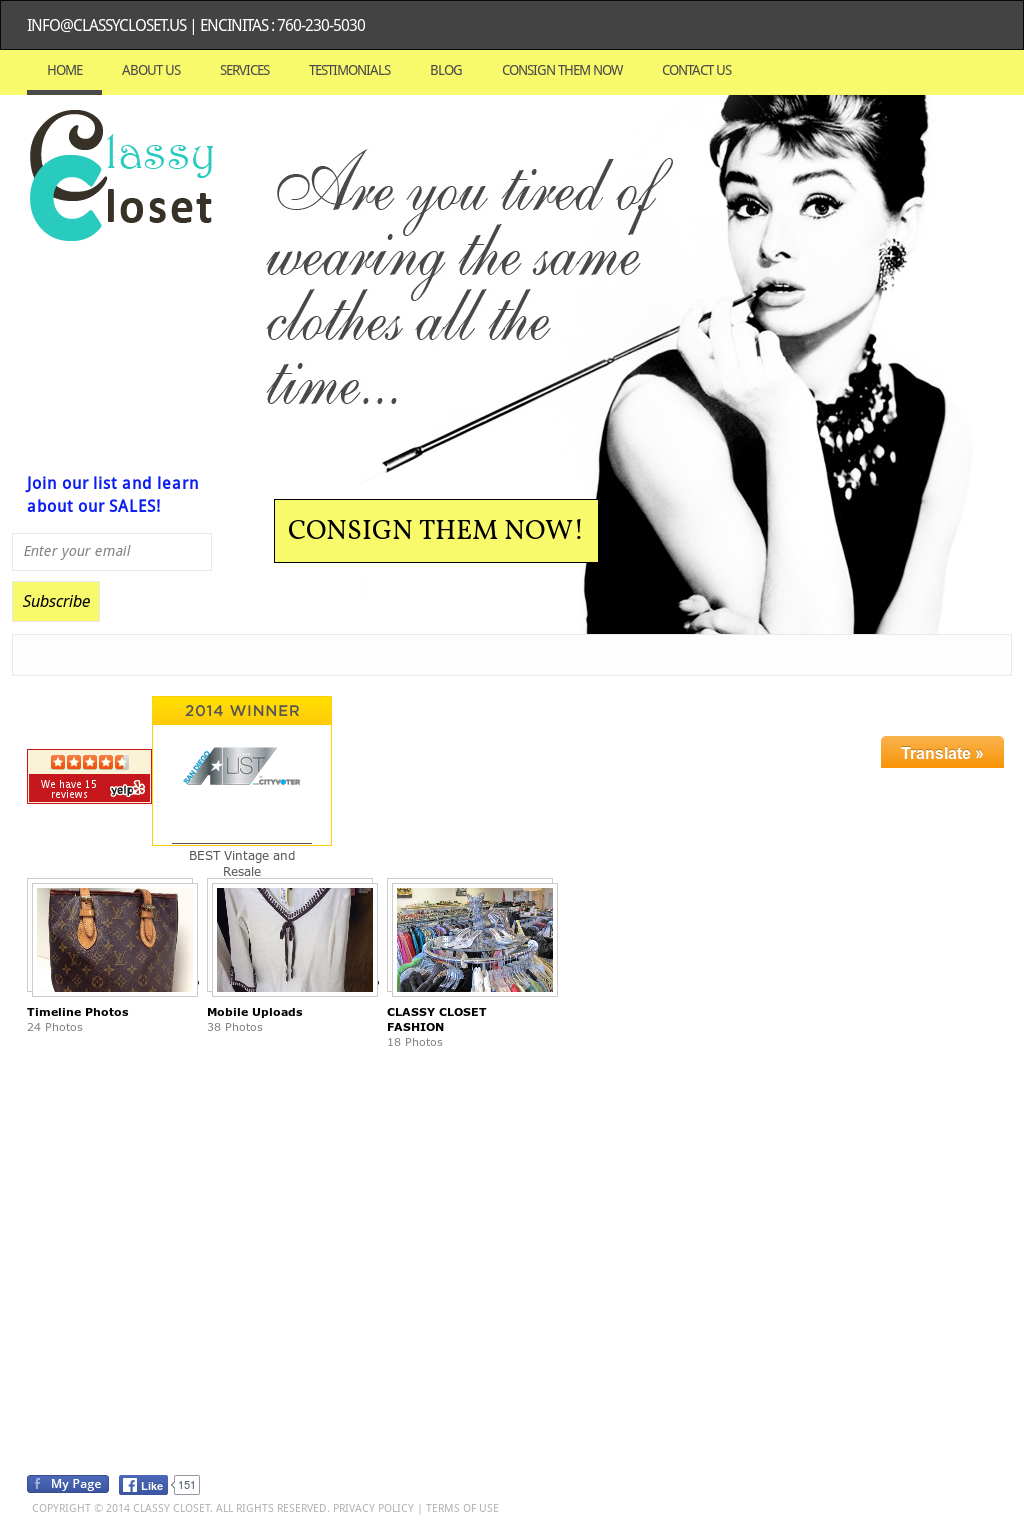 Delicieux Classy Closet Consignment Boutique Website History